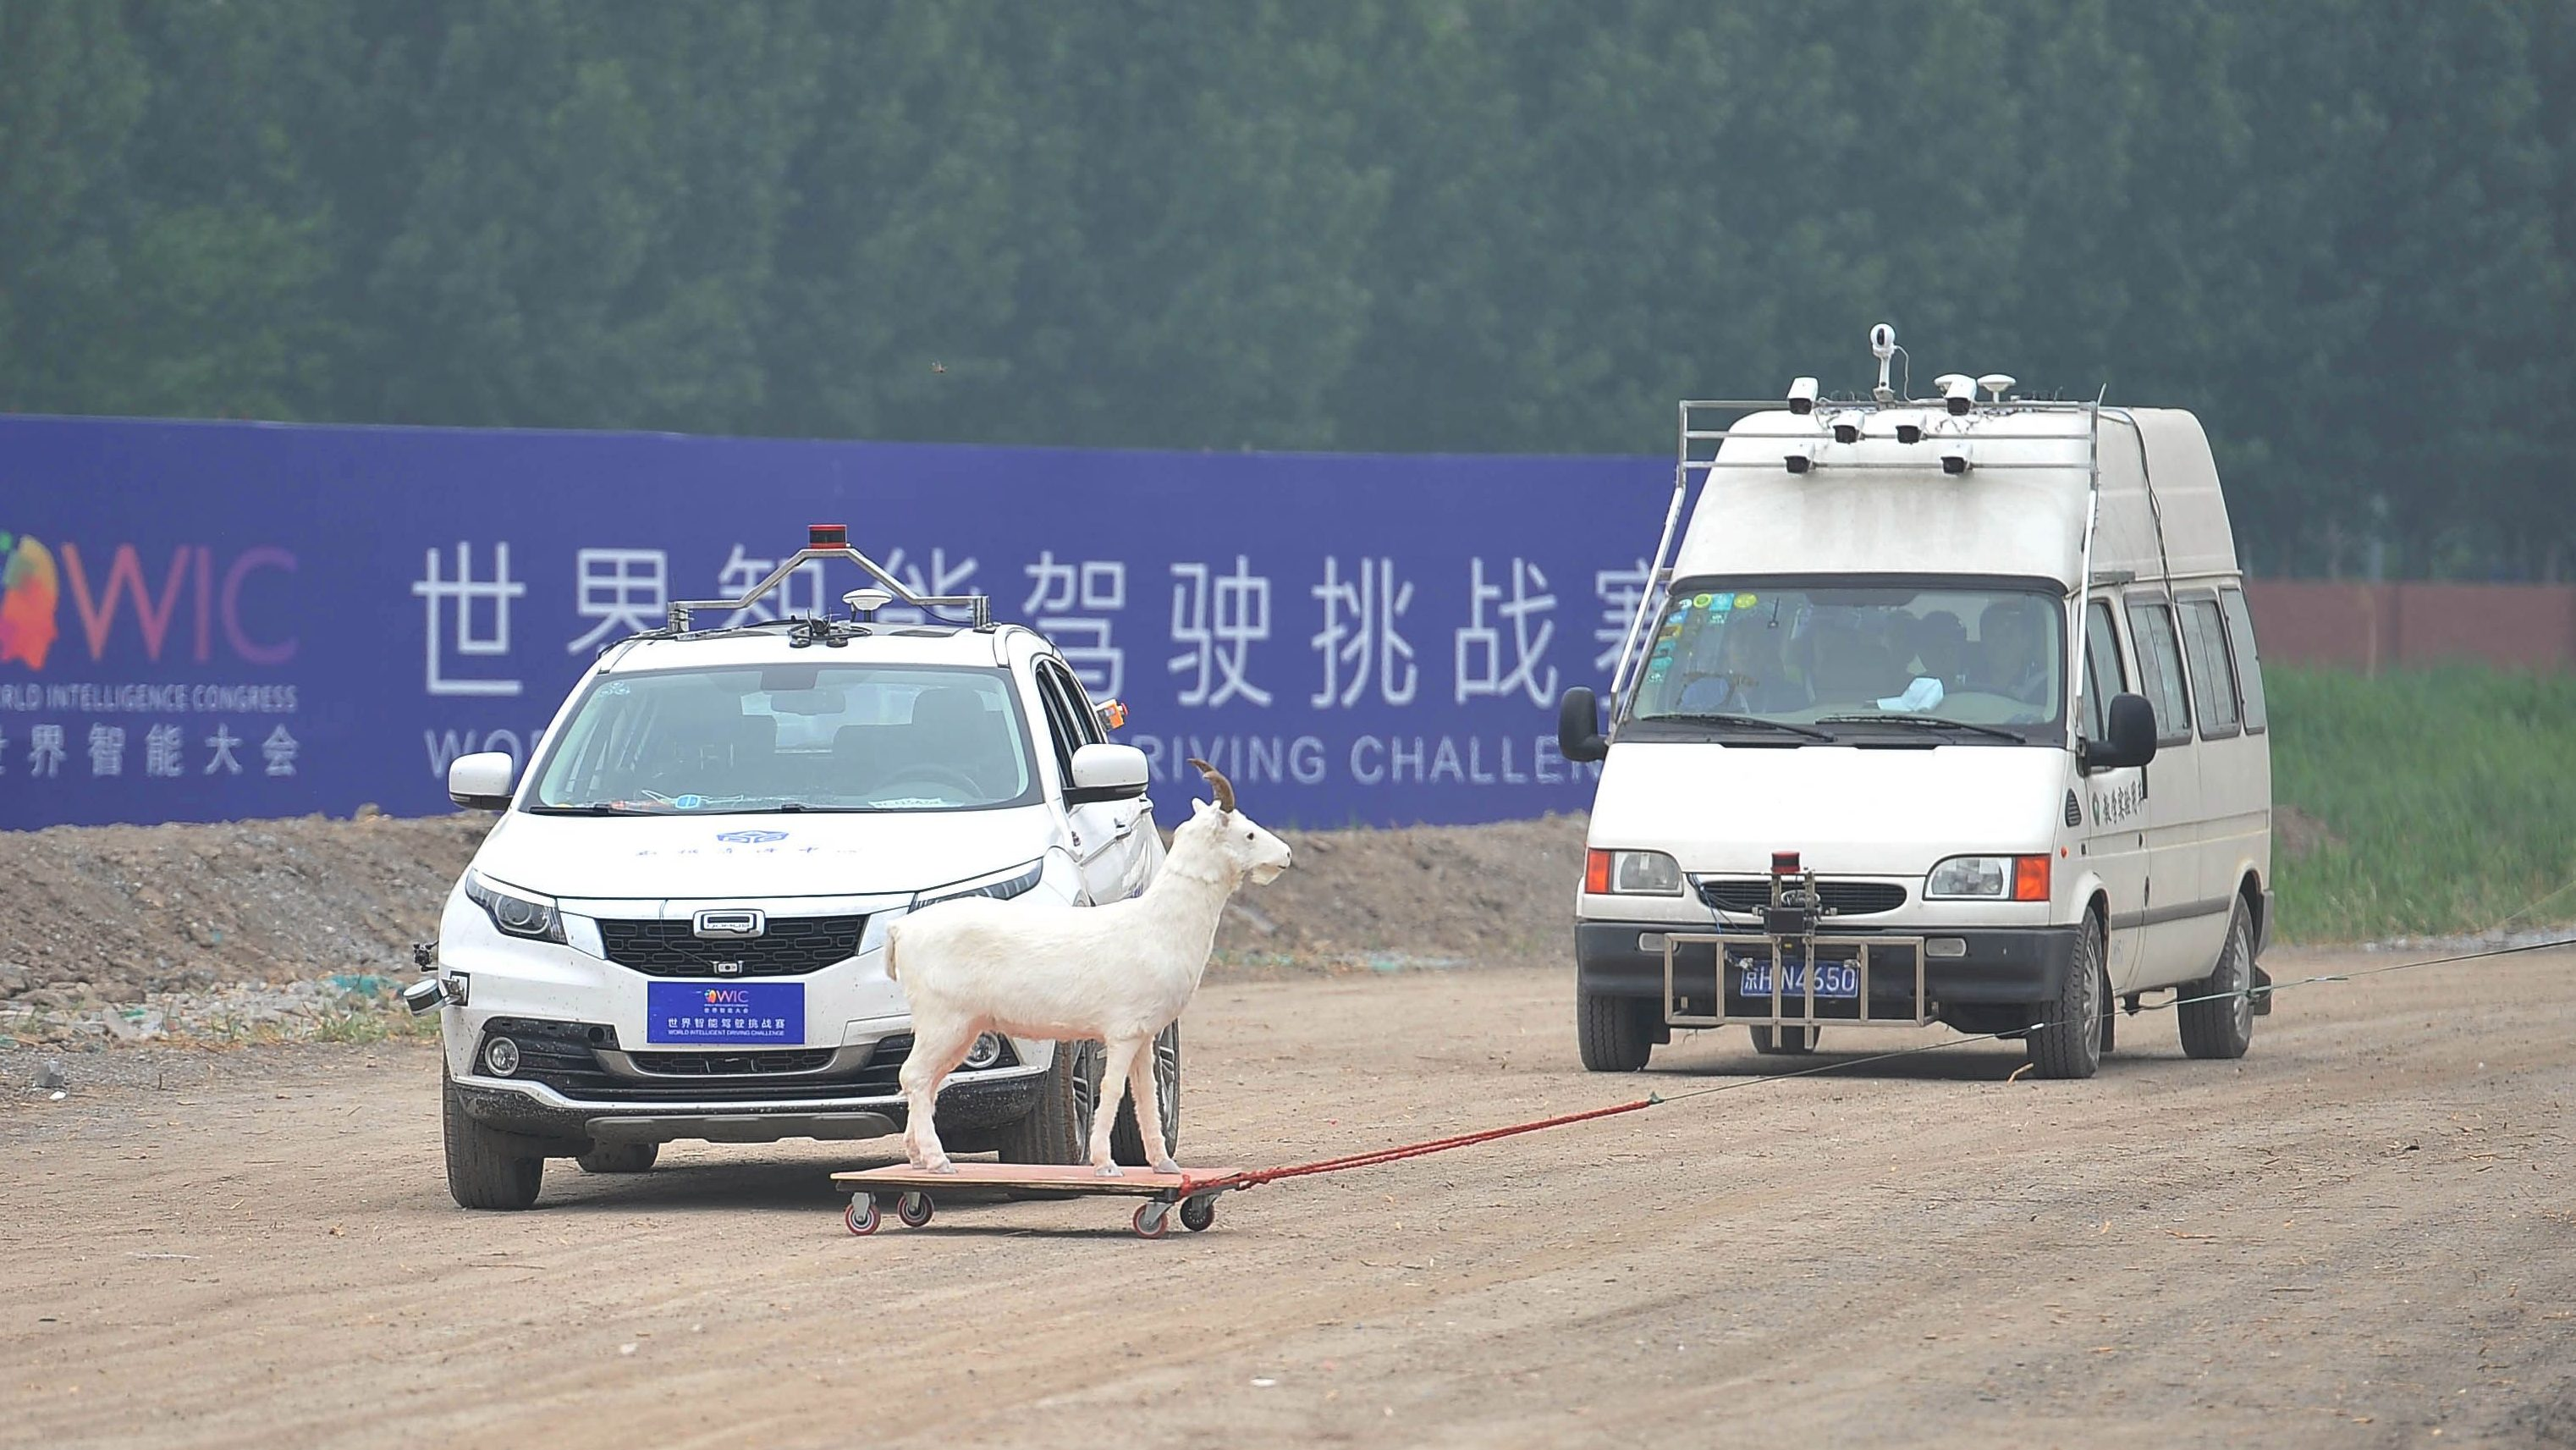 A self-driving vehicle (L) takes part in an autonomous driving contest held as a part of the World Intelligent Congress, in Dongli district of Tianjin, China May 15, 2018. Picture taken May 15, 2018.